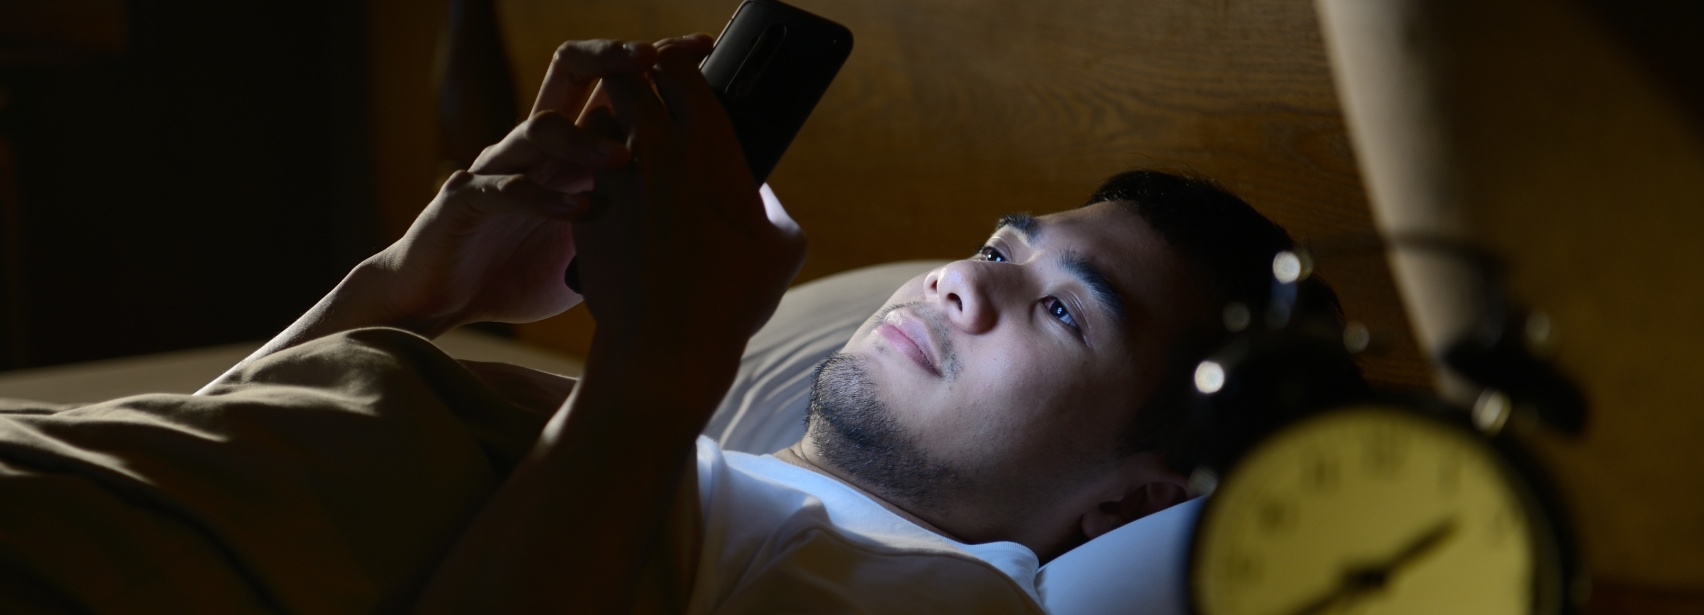 Blue Light: Your Device is Disrupting Your Sleep